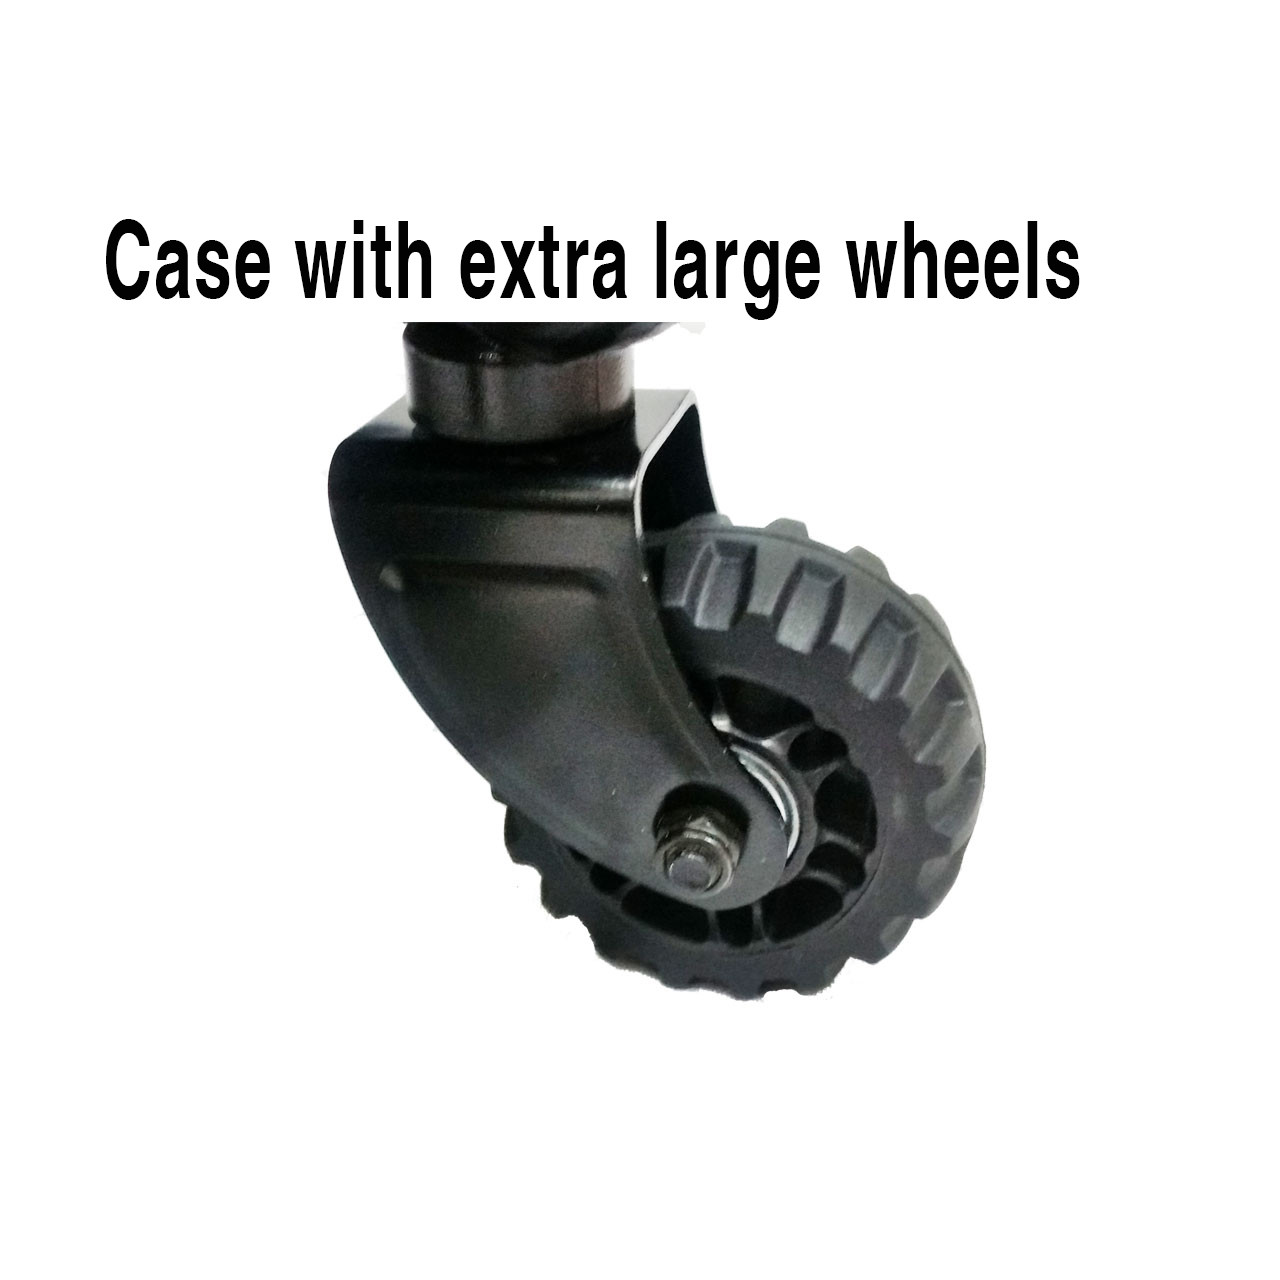 Case with extra large wheels